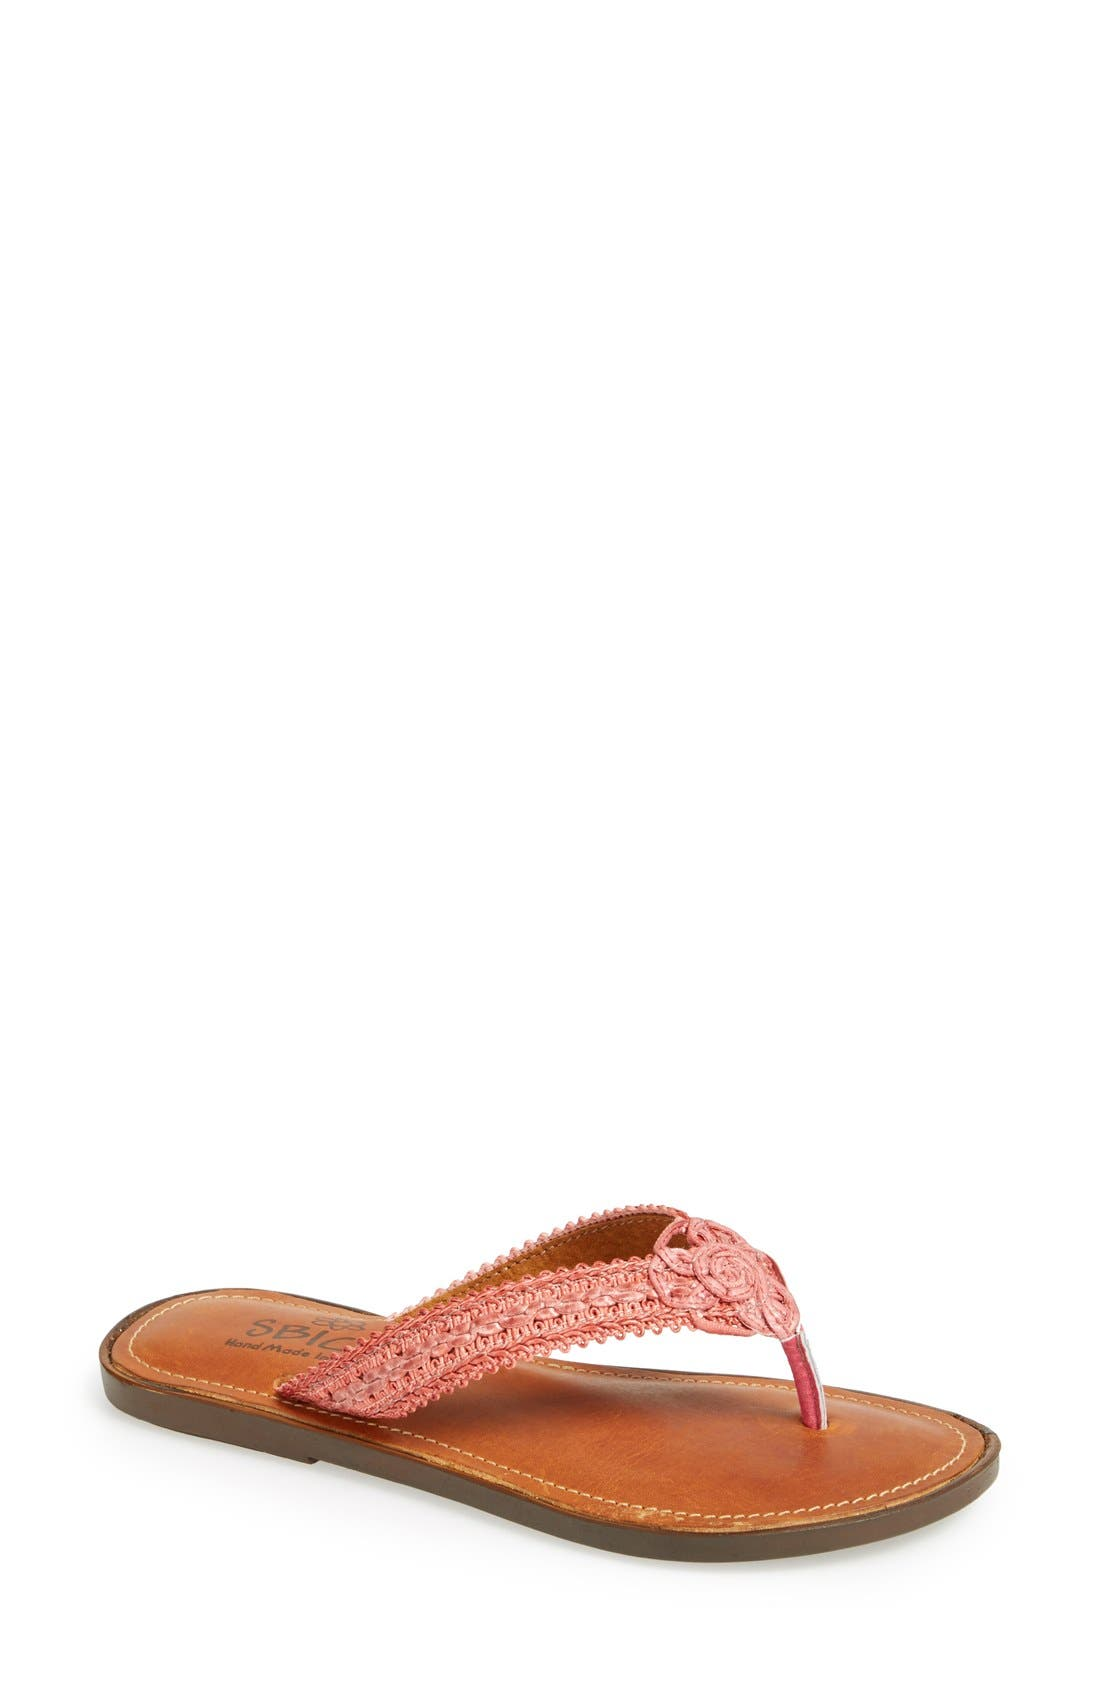 Alternate Image 1 Selected - Sbicca 'Longshore' Sandal